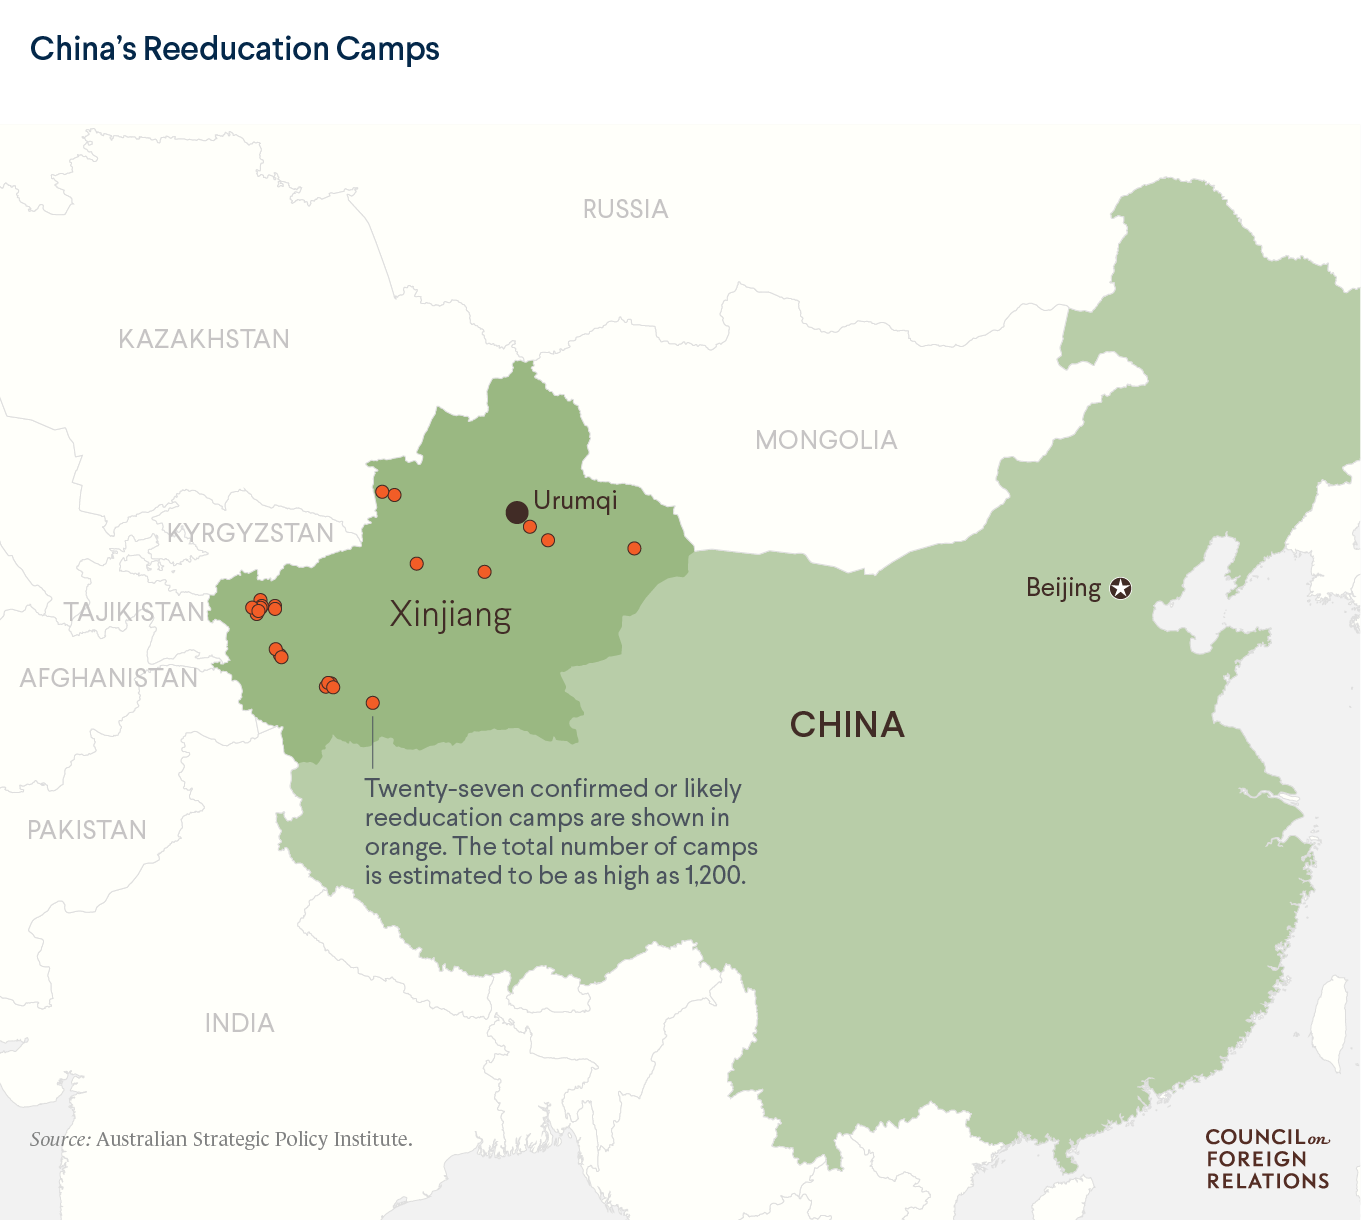 A map showing 27 reeducation camps in China's northwestern province of Xinjiang.